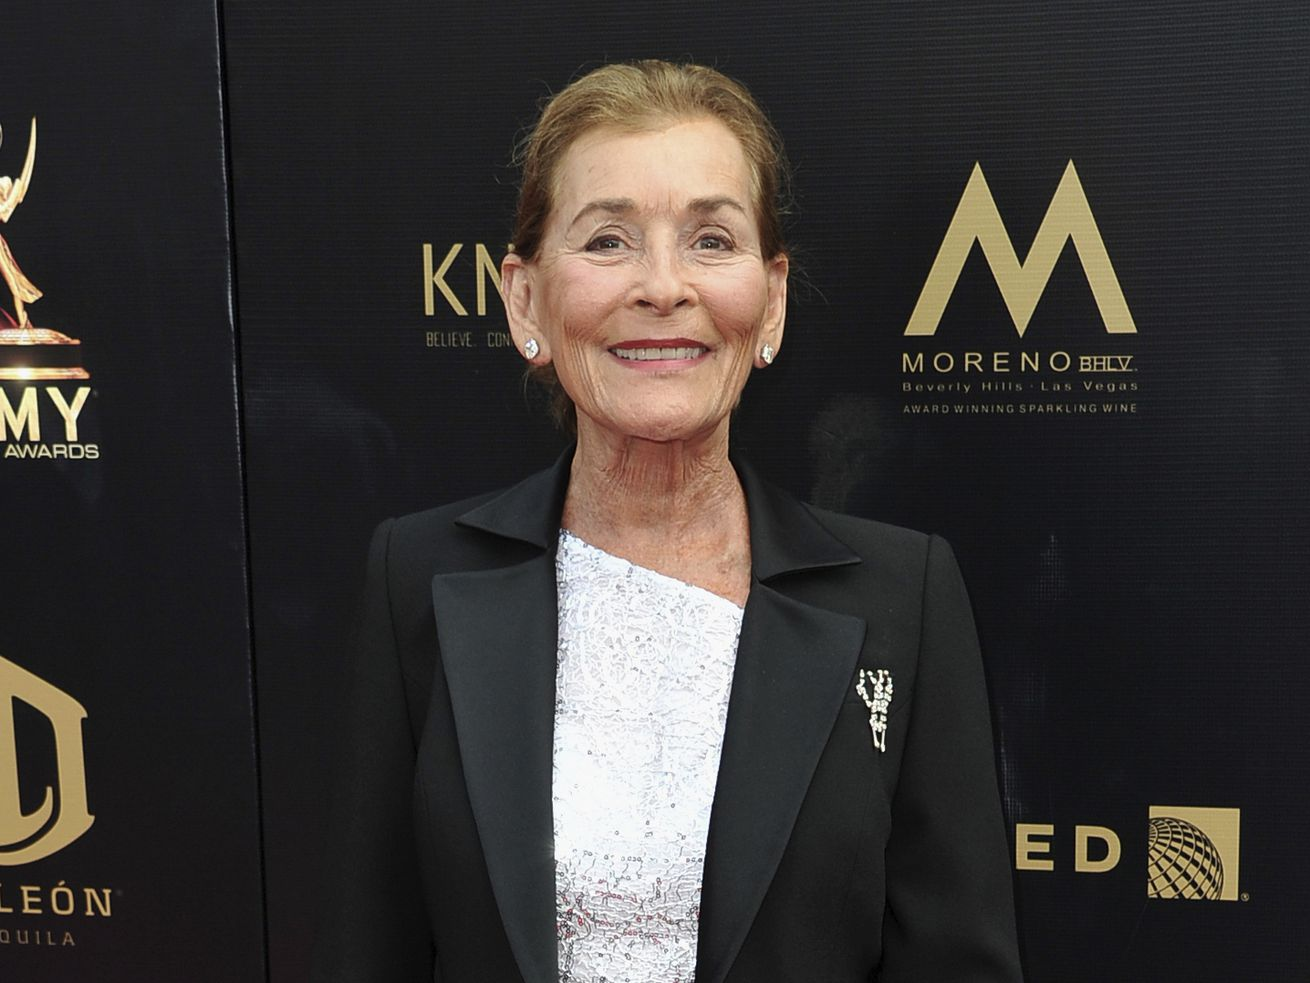 Judge Judy Sheindlin arrives at the 46th annual Daytime Emmy Awards in Pasadena, California, in 2019.